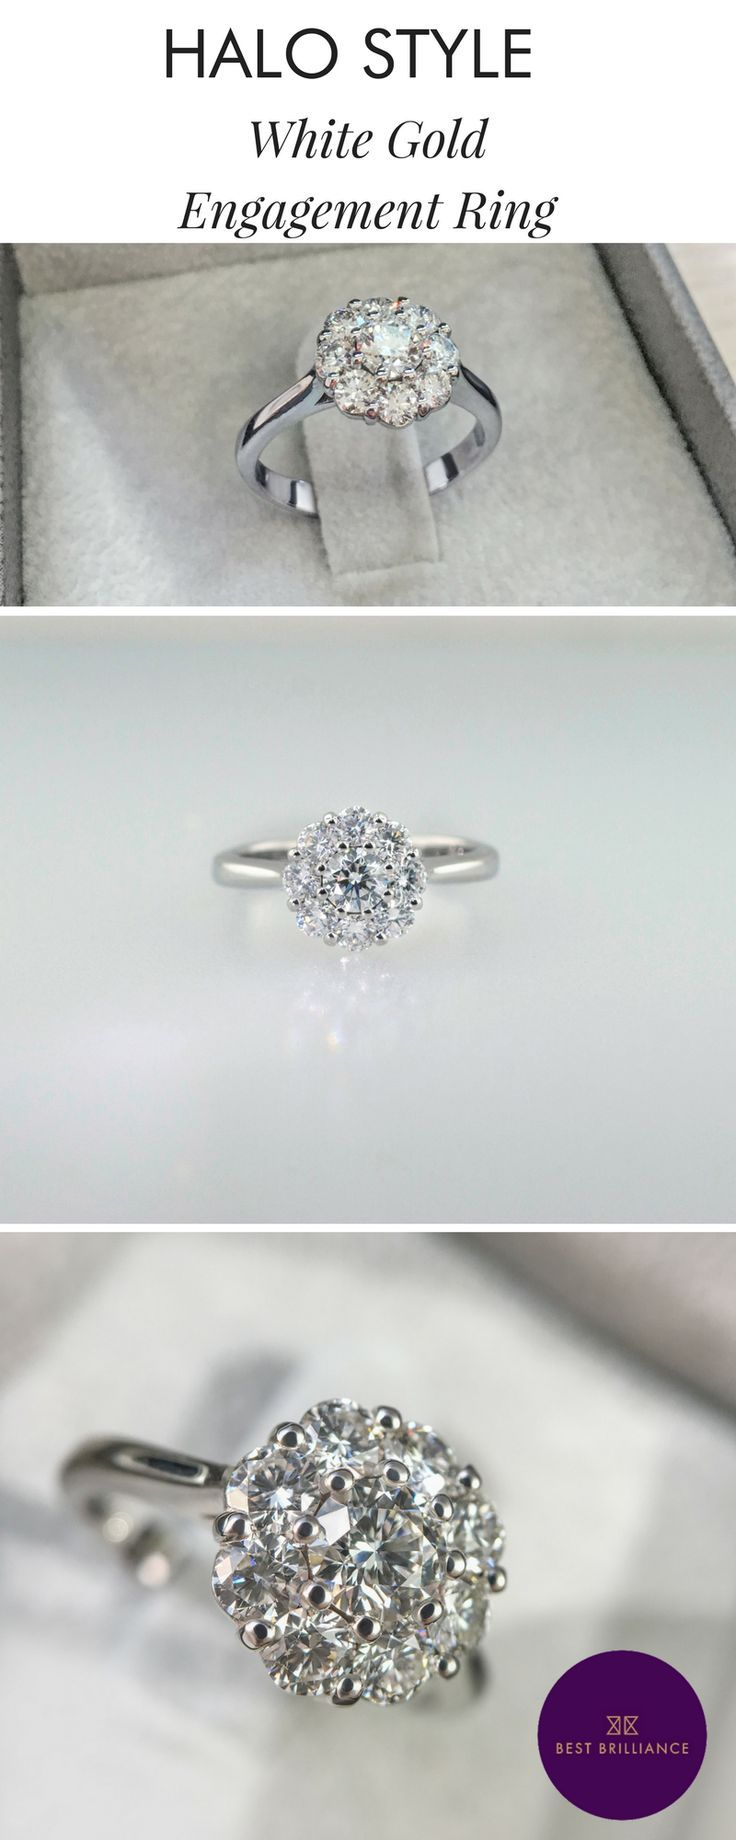 affordable engagement rings affordable wedding rings Find this Pin and more on Lovely Little Weddings